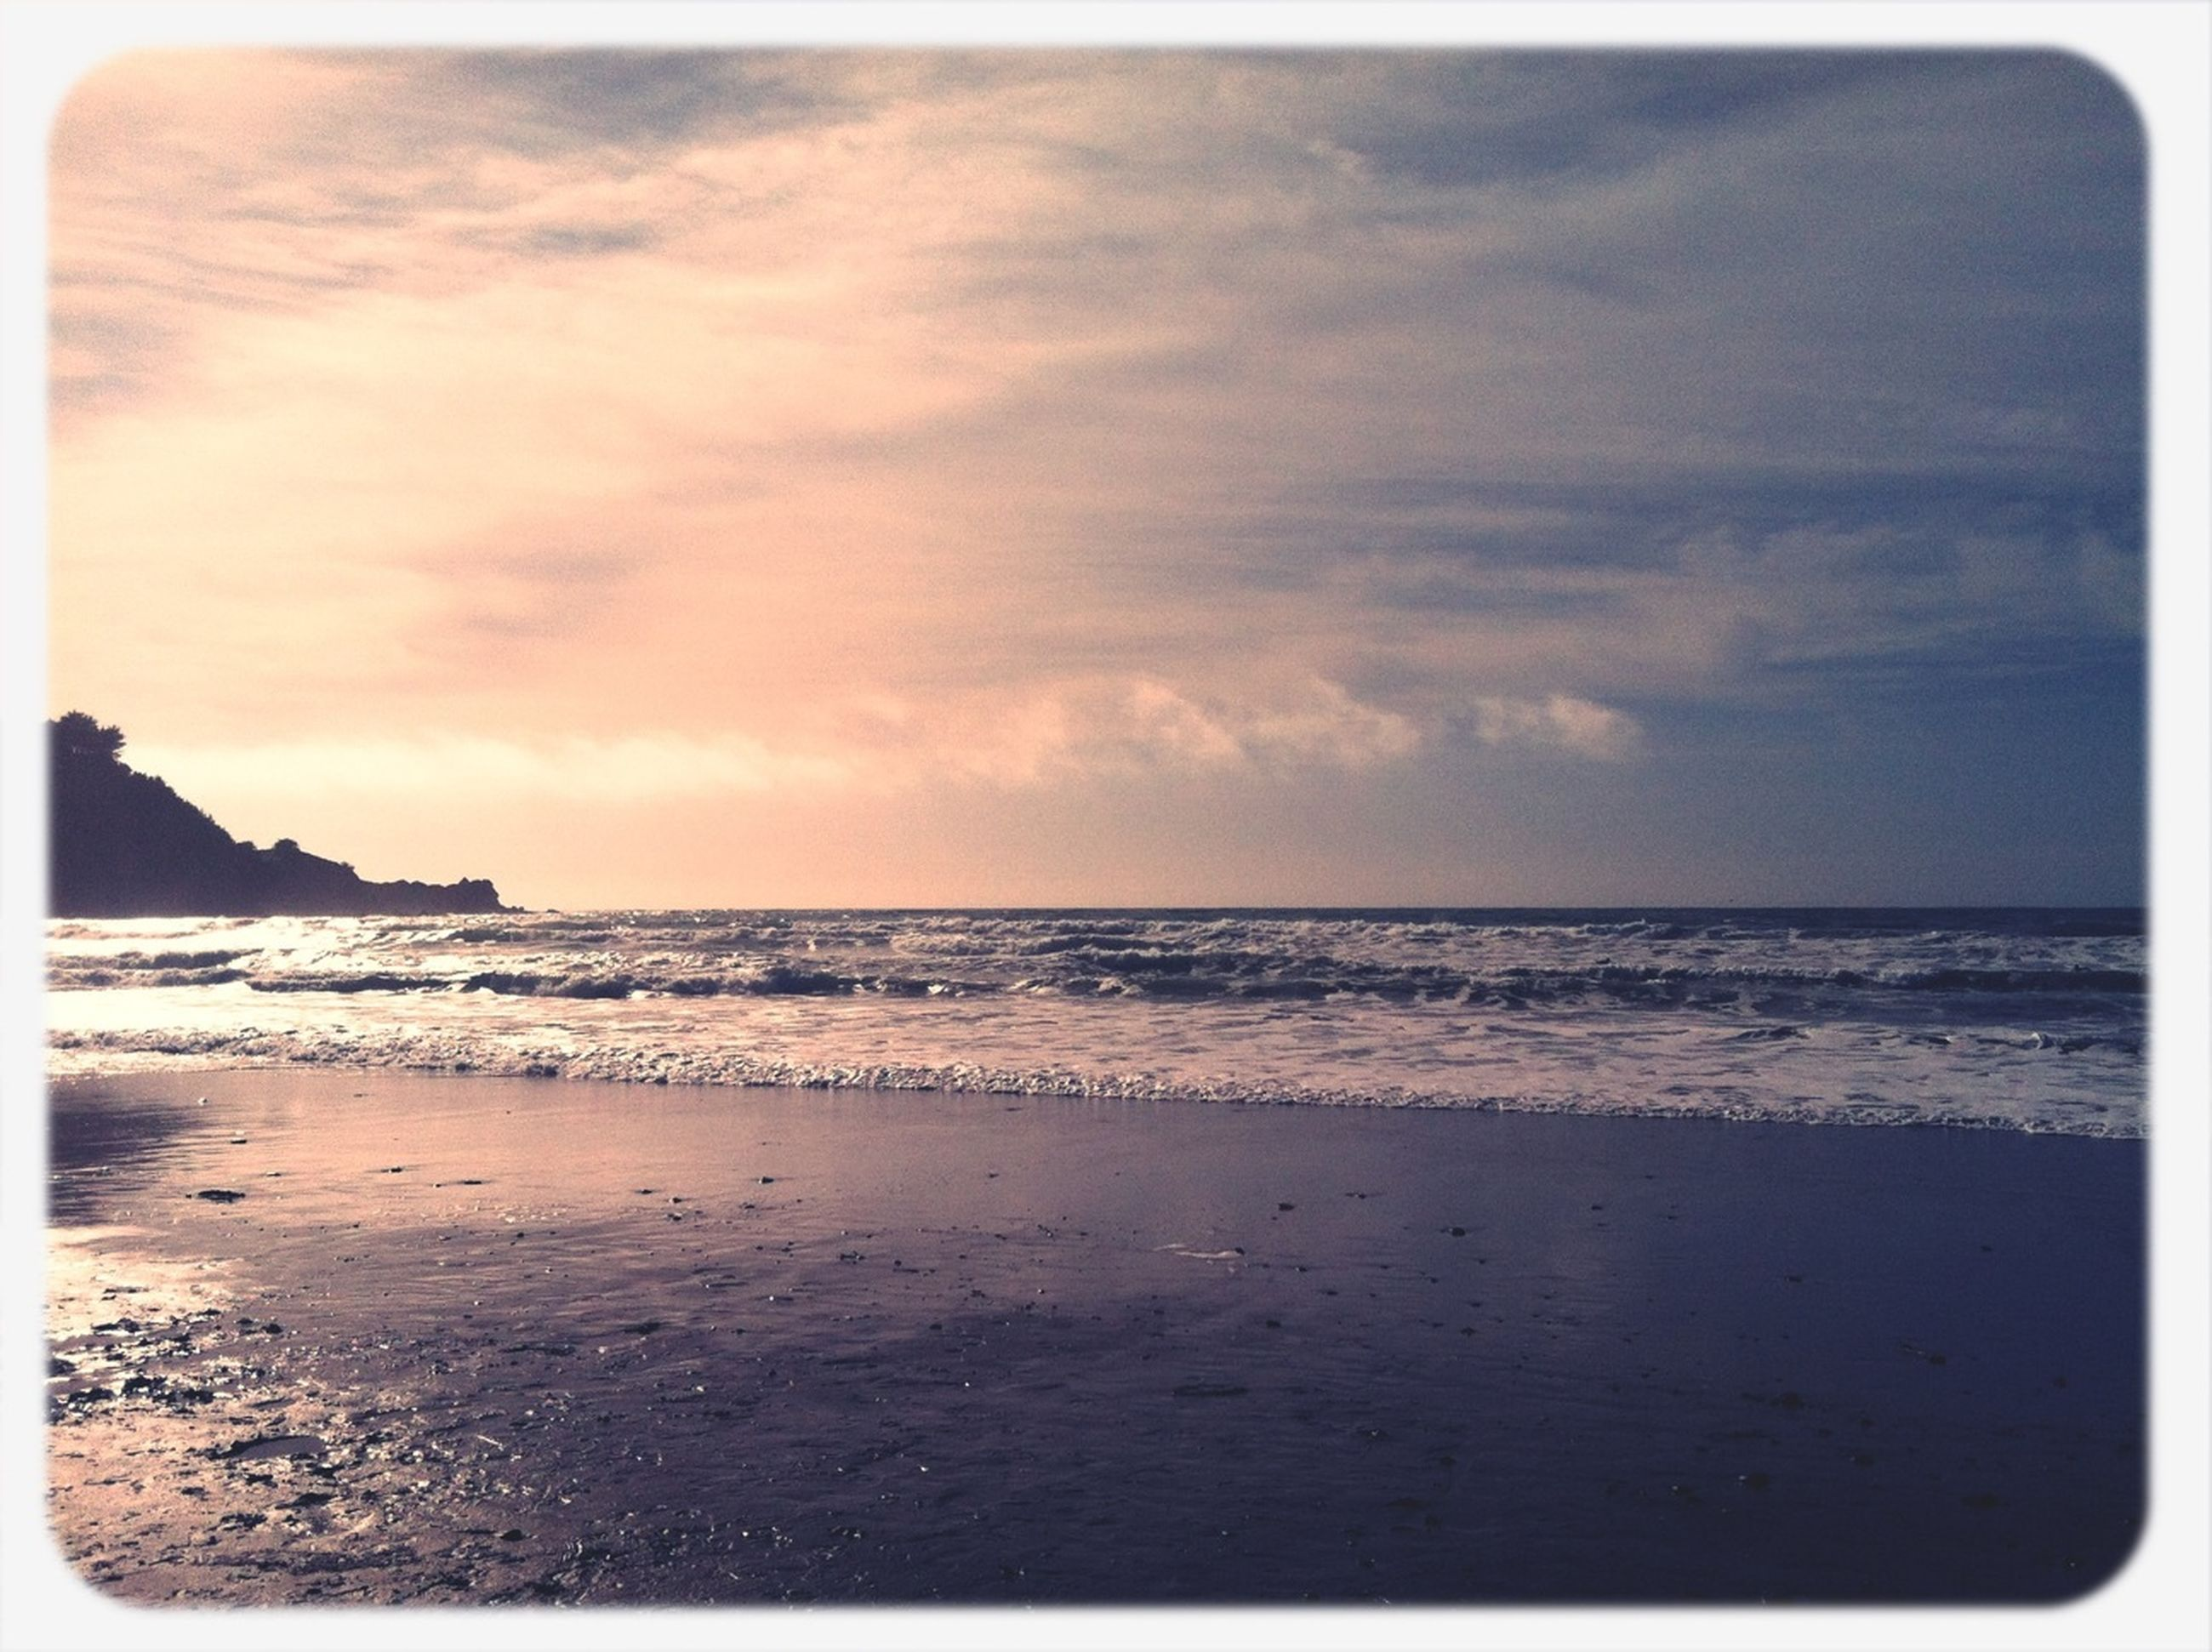 sea, horizon over water, transfer print, beach, water, sky, scenics, tranquil scene, tranquility, auto post production filter, beauty in nature, shore, nature, sand, idyllic, cloud - sky, wave, coastline, cloud, outdoors